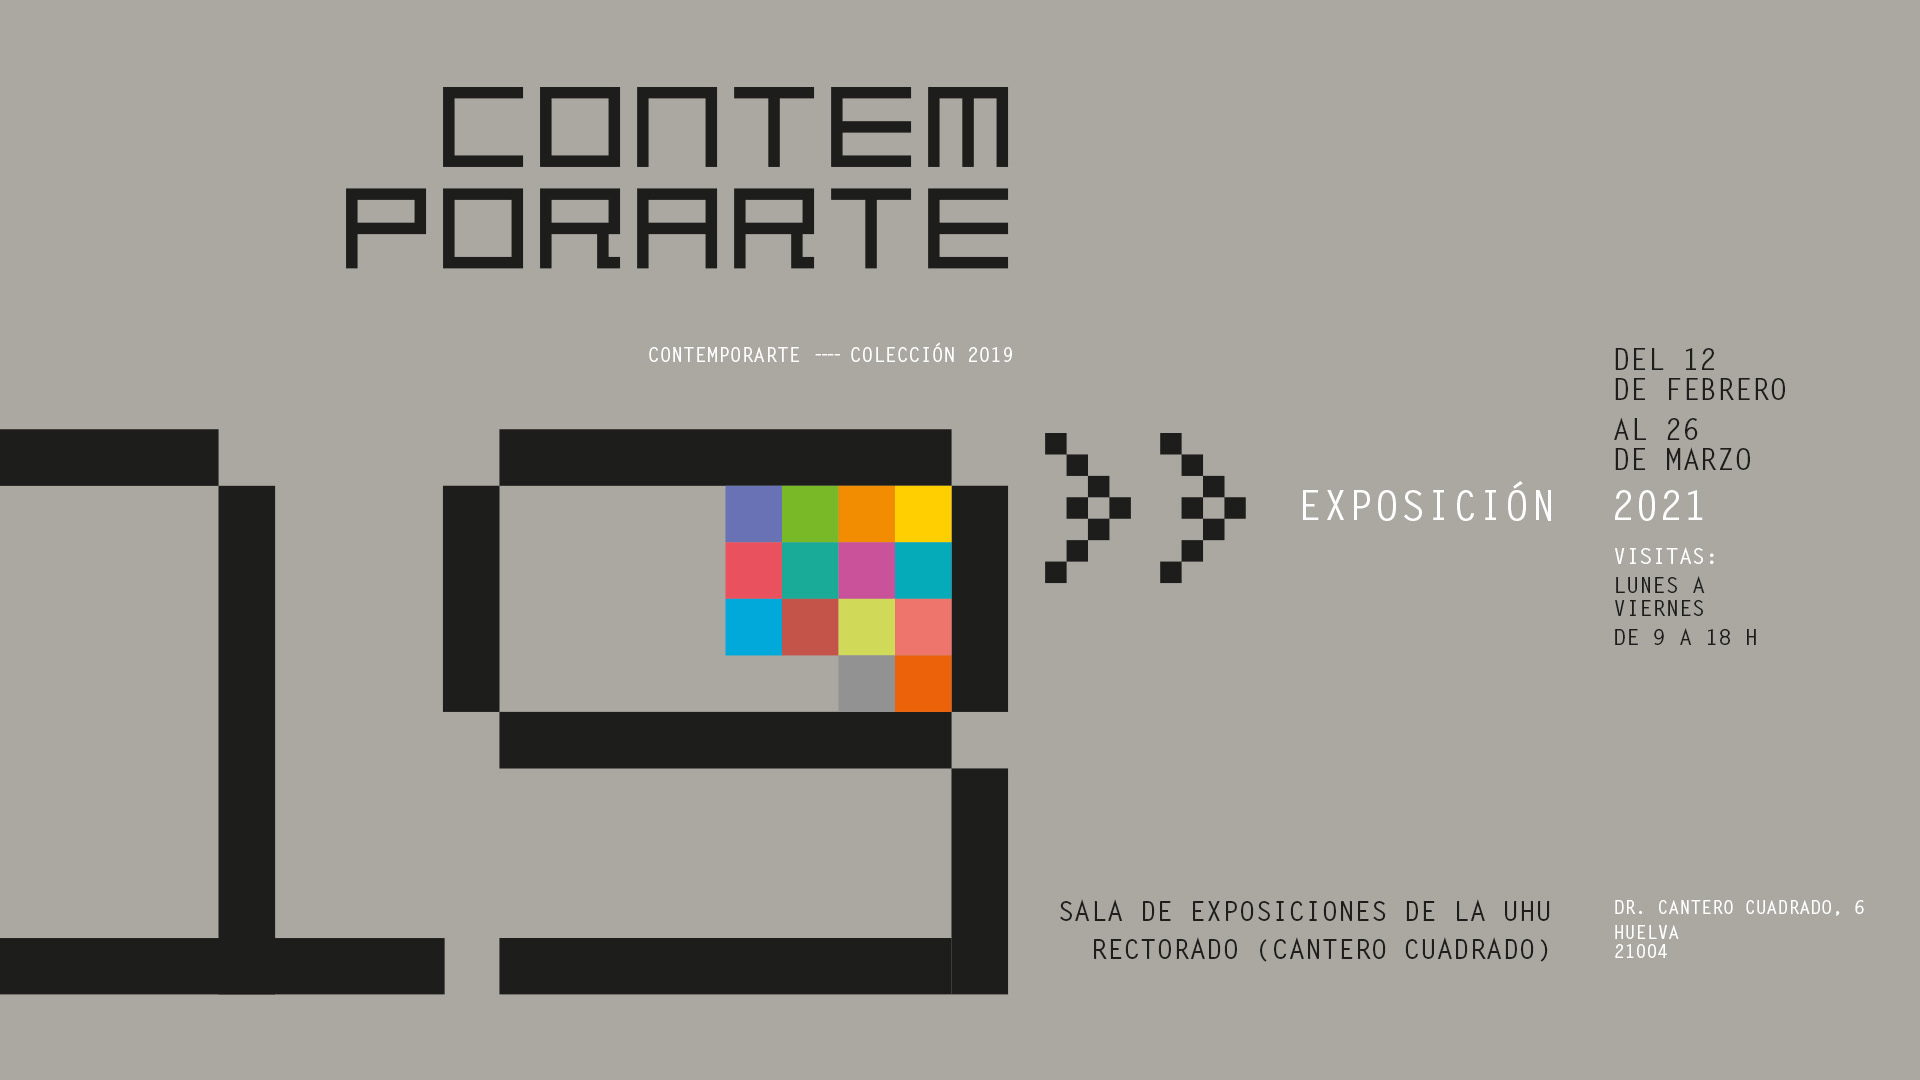 1080x1920 Expo Slider Web Cotemporarte 2019